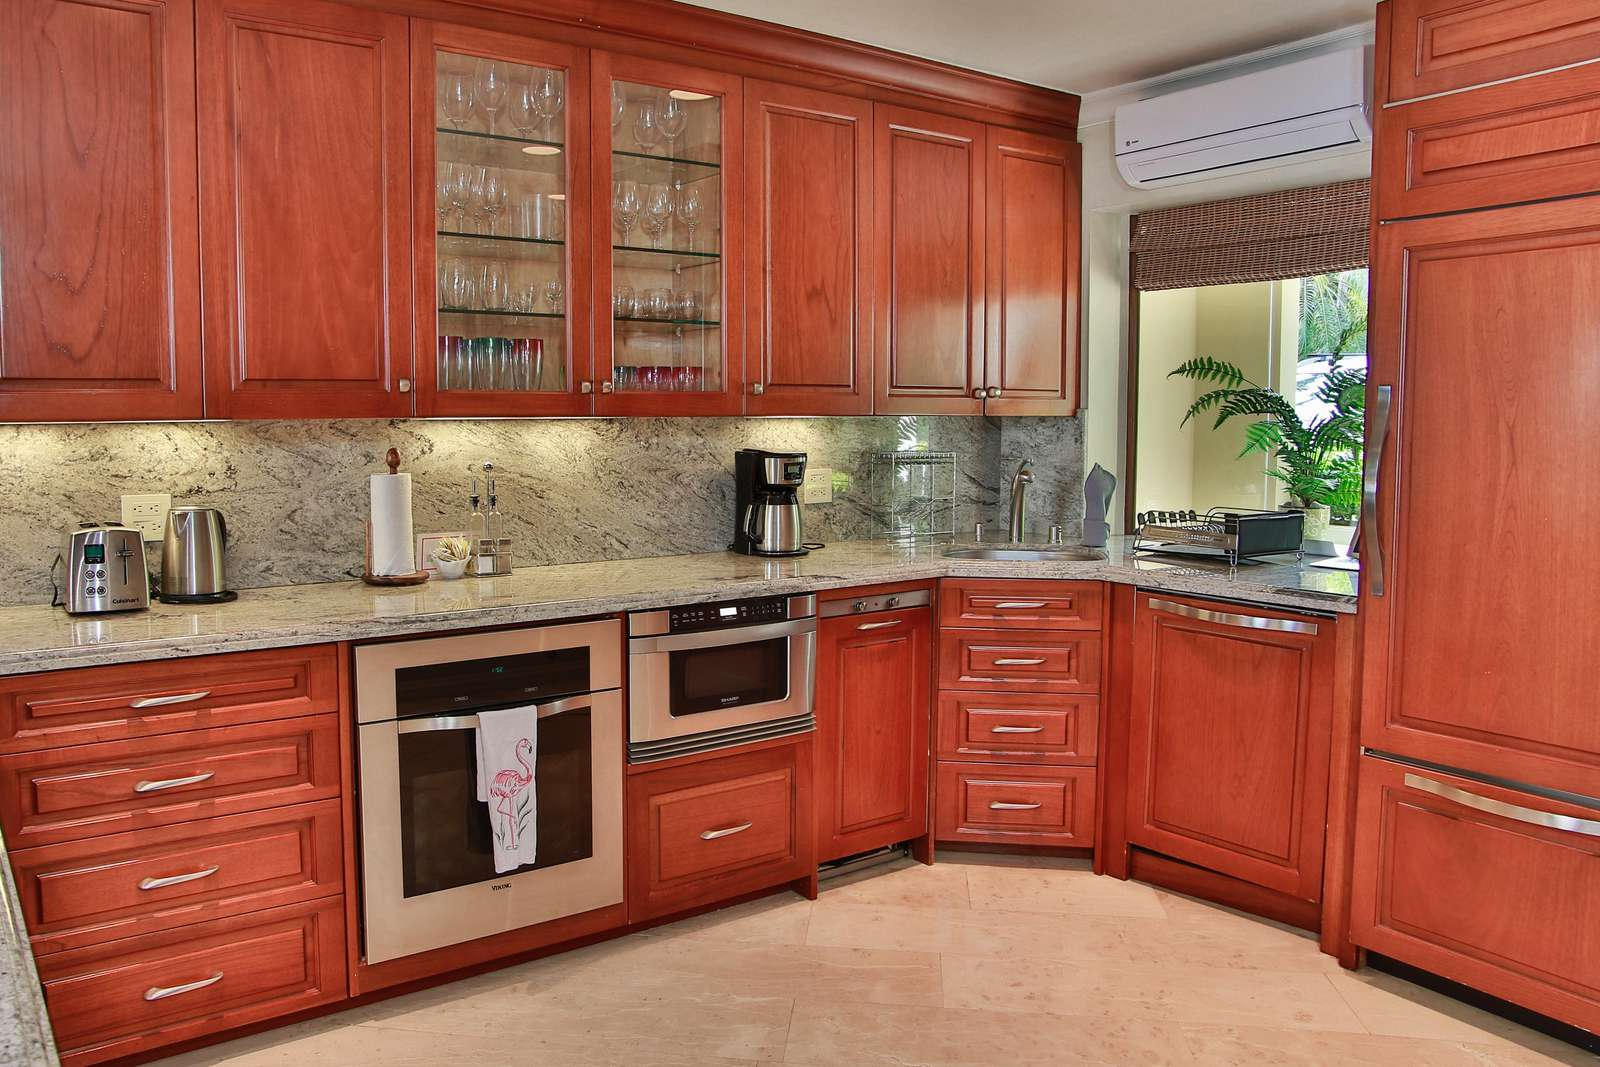 Another view of the gourmet kitchen